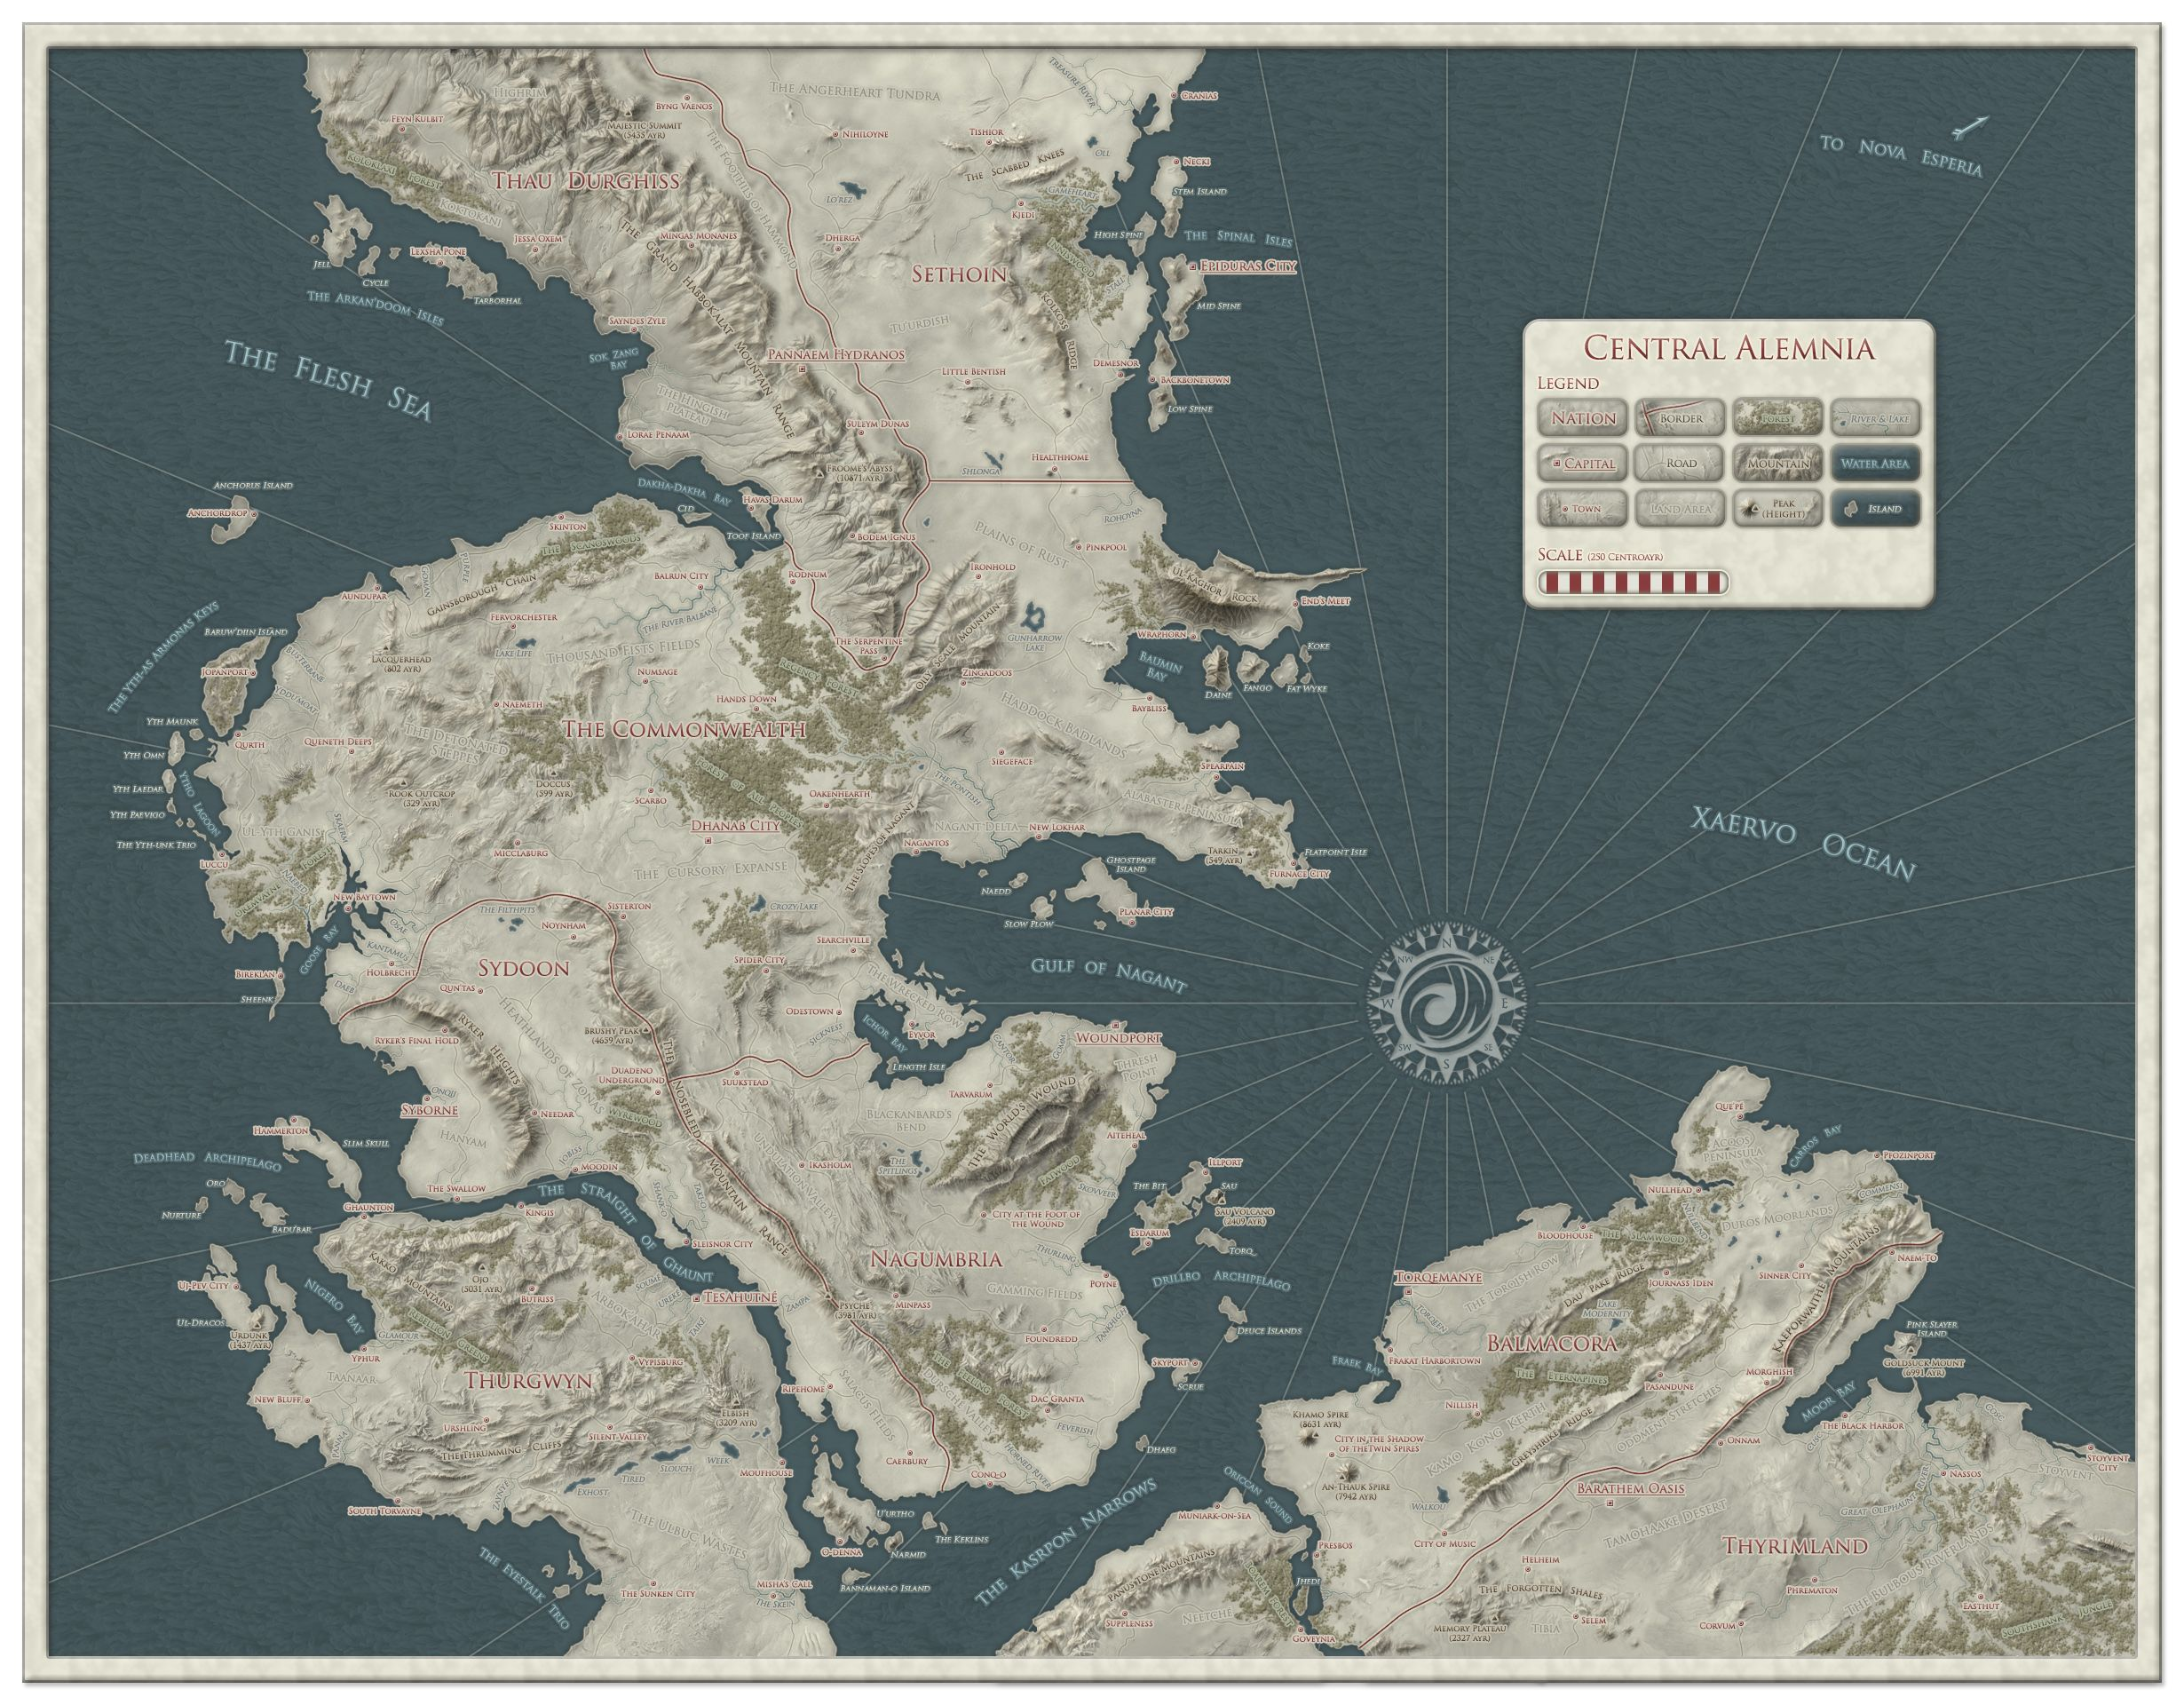 Cartographers' Guild - Central Alemnia by Daelin | Fantasy ... on salem world map, tolkien world map, the witcher world map,